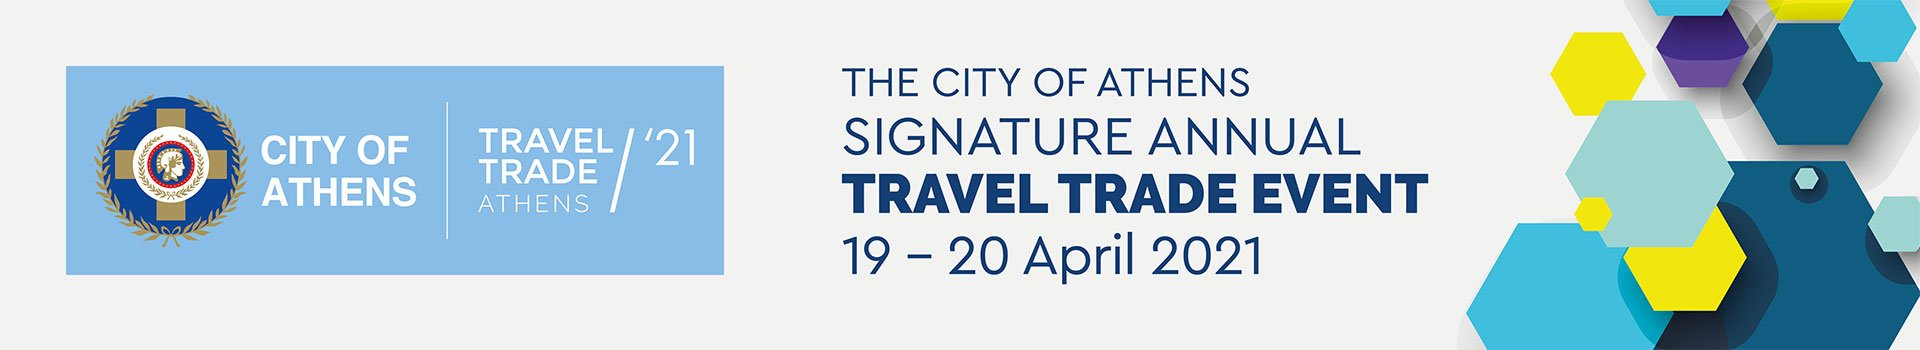 The City Of Athens Signature Annual Travel Trade Event